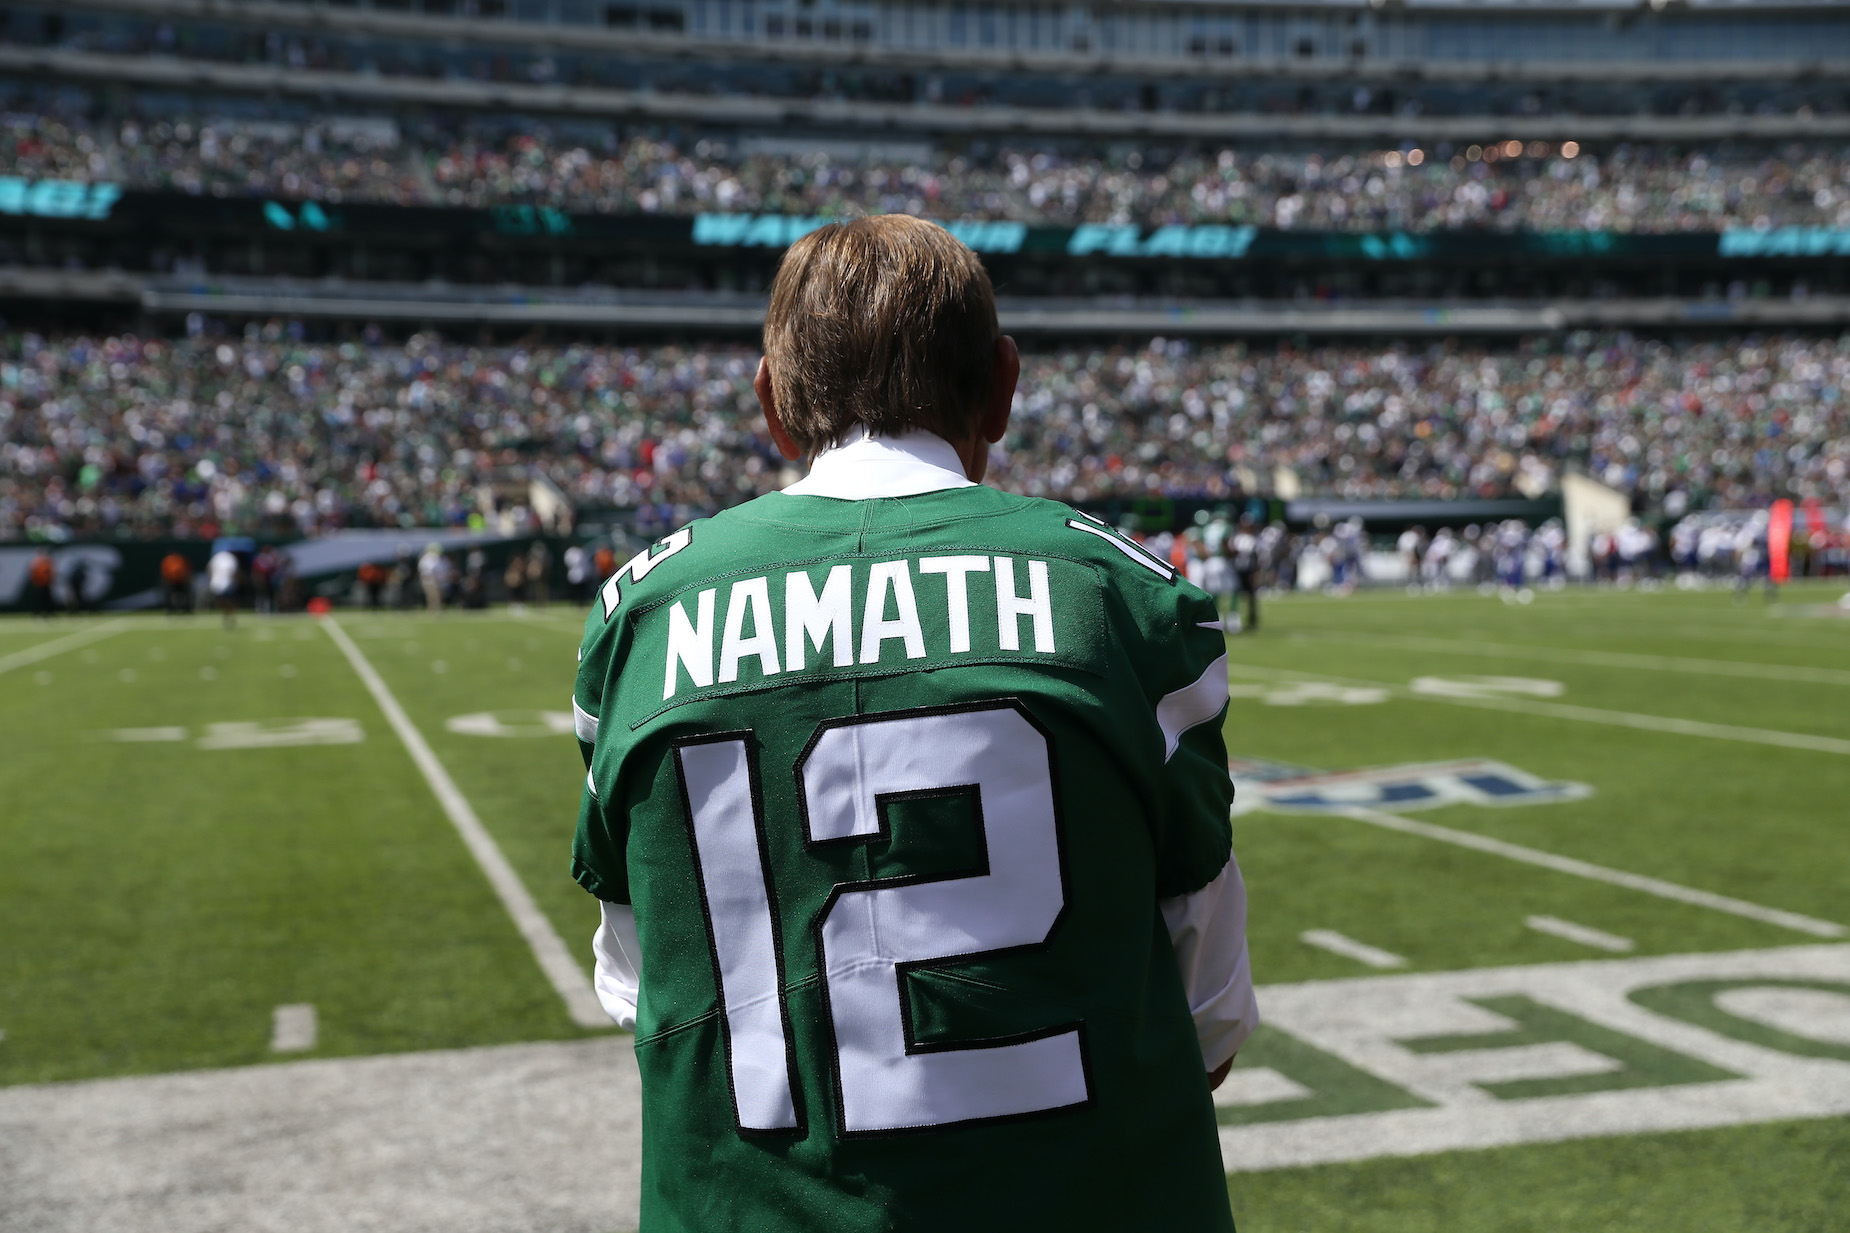 New York Jets legend Joe Namath made an uncomfortable comment about female referee Sarah Thomas ahead of the Super Bowl.